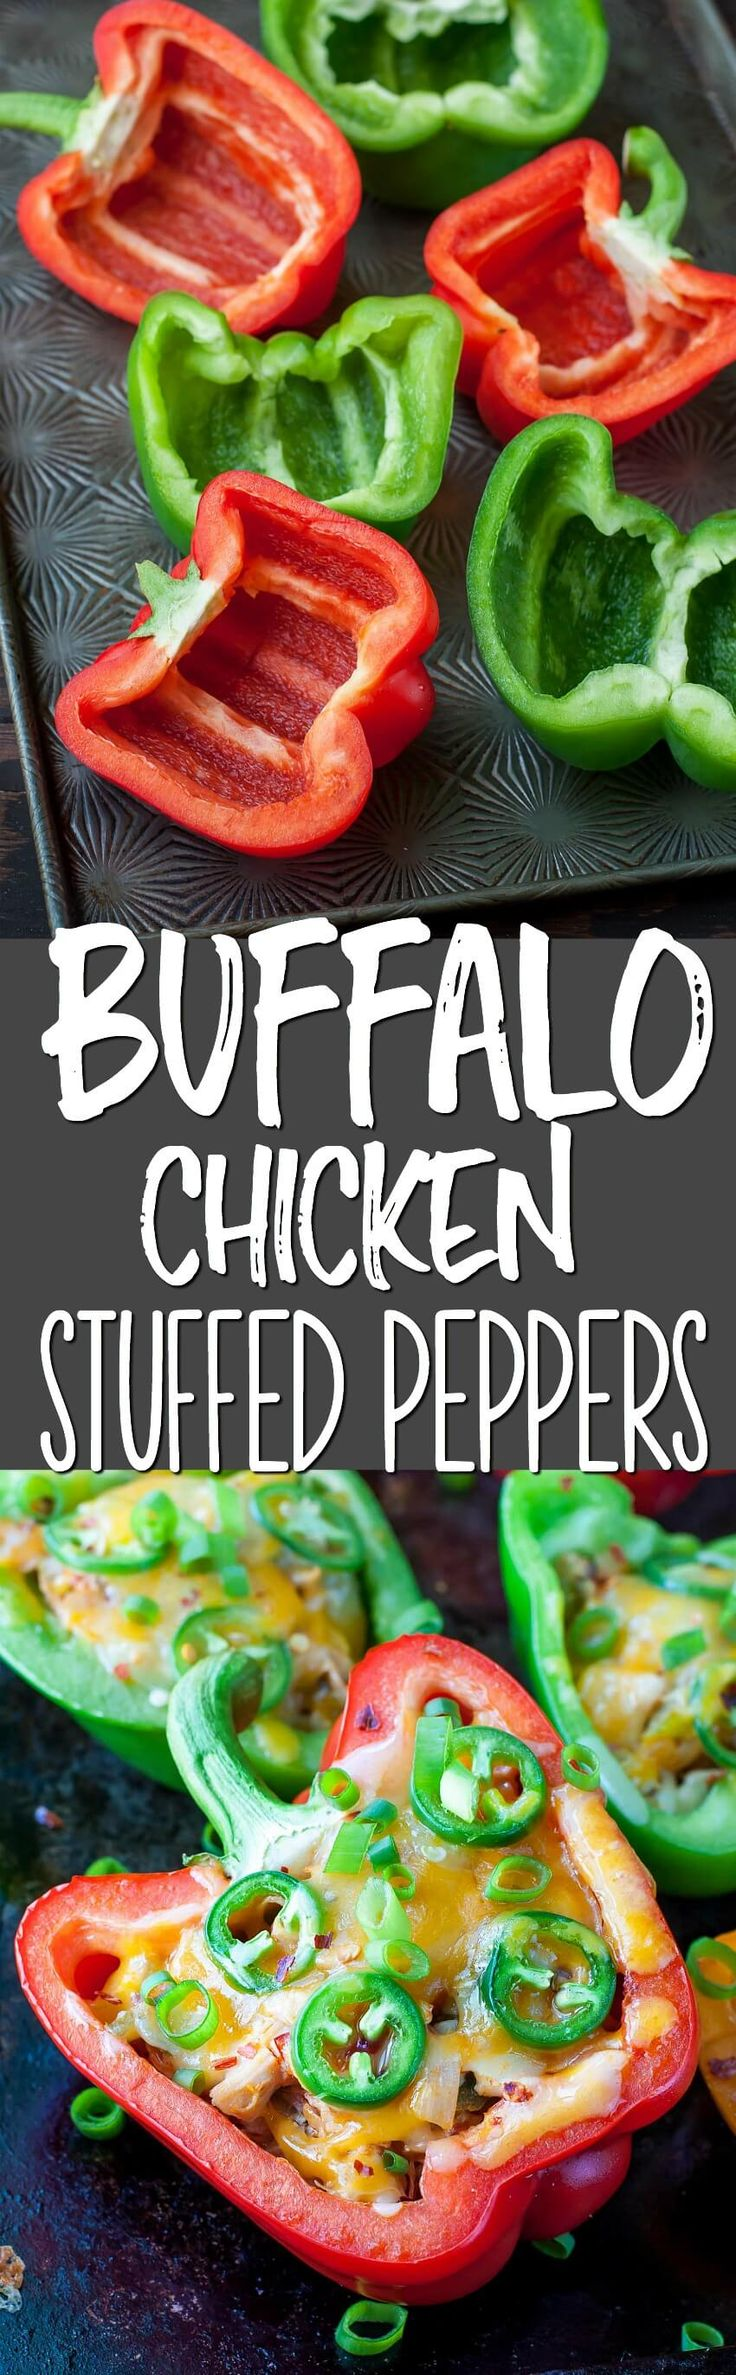 Break out the hot sauce and grab some bell peppers, we're making Cheesy Buffalo Chicken and Veggie Stuffed Peppers for dinner!